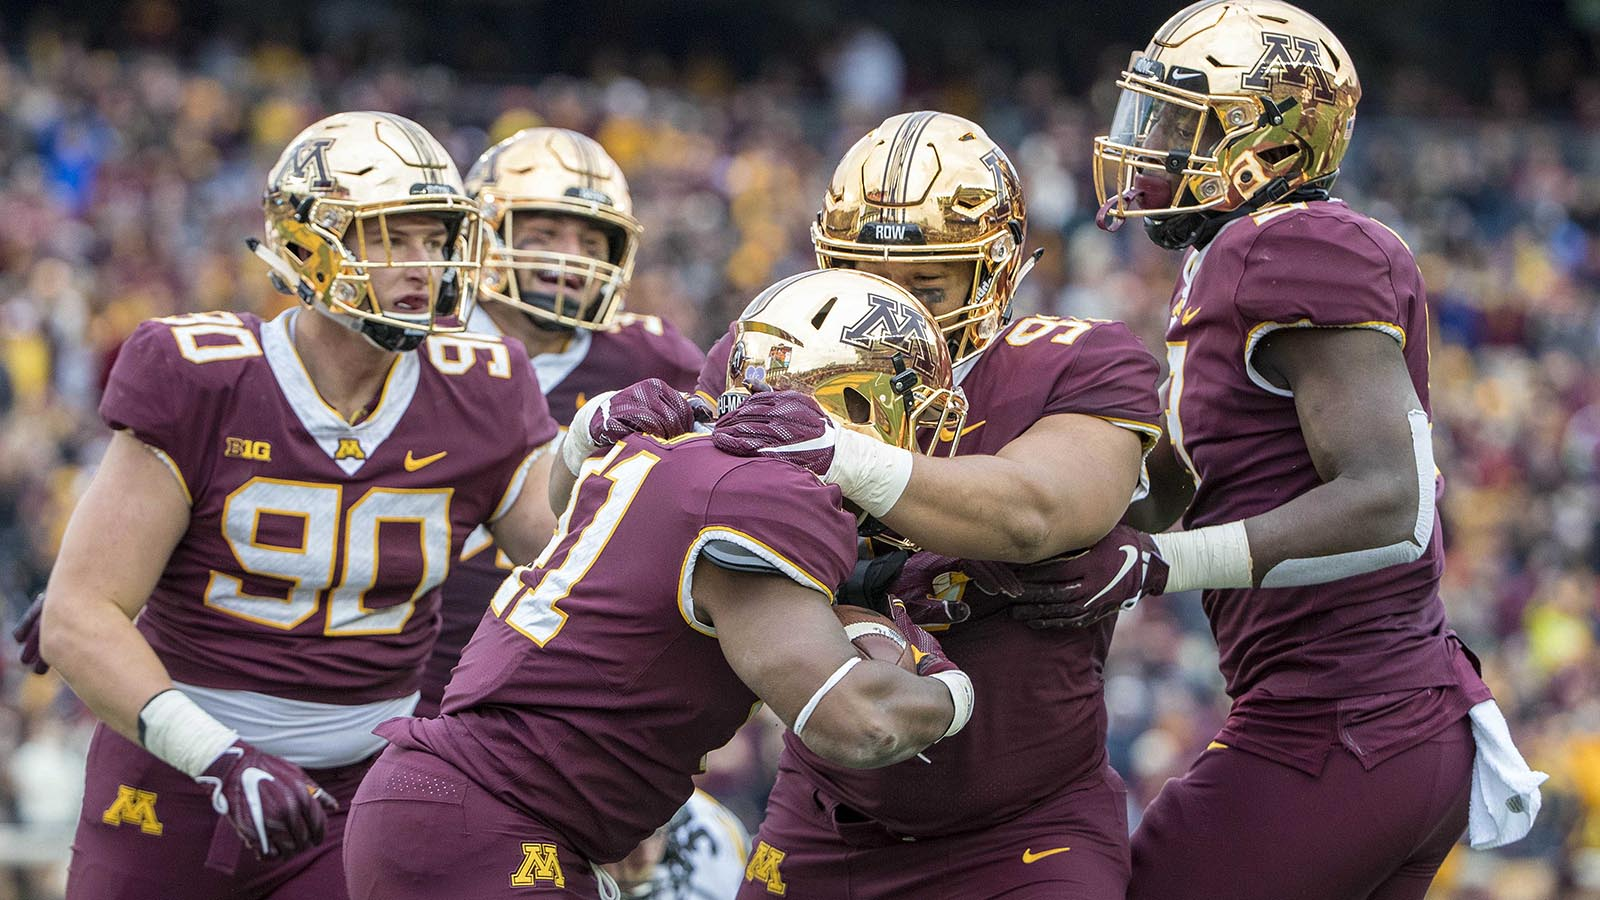 Oct 6, 2018; Minneapolis, MN, USA; Minnesota Golden Gophers linebacker Thomas Barber (41) celebrates with team mates after picking up a fumble in the second half against the Iowa Hawkeyes at TCF Bank Stadium. Mandatory Credit: Jesse Johnson-USA TODAY Sports